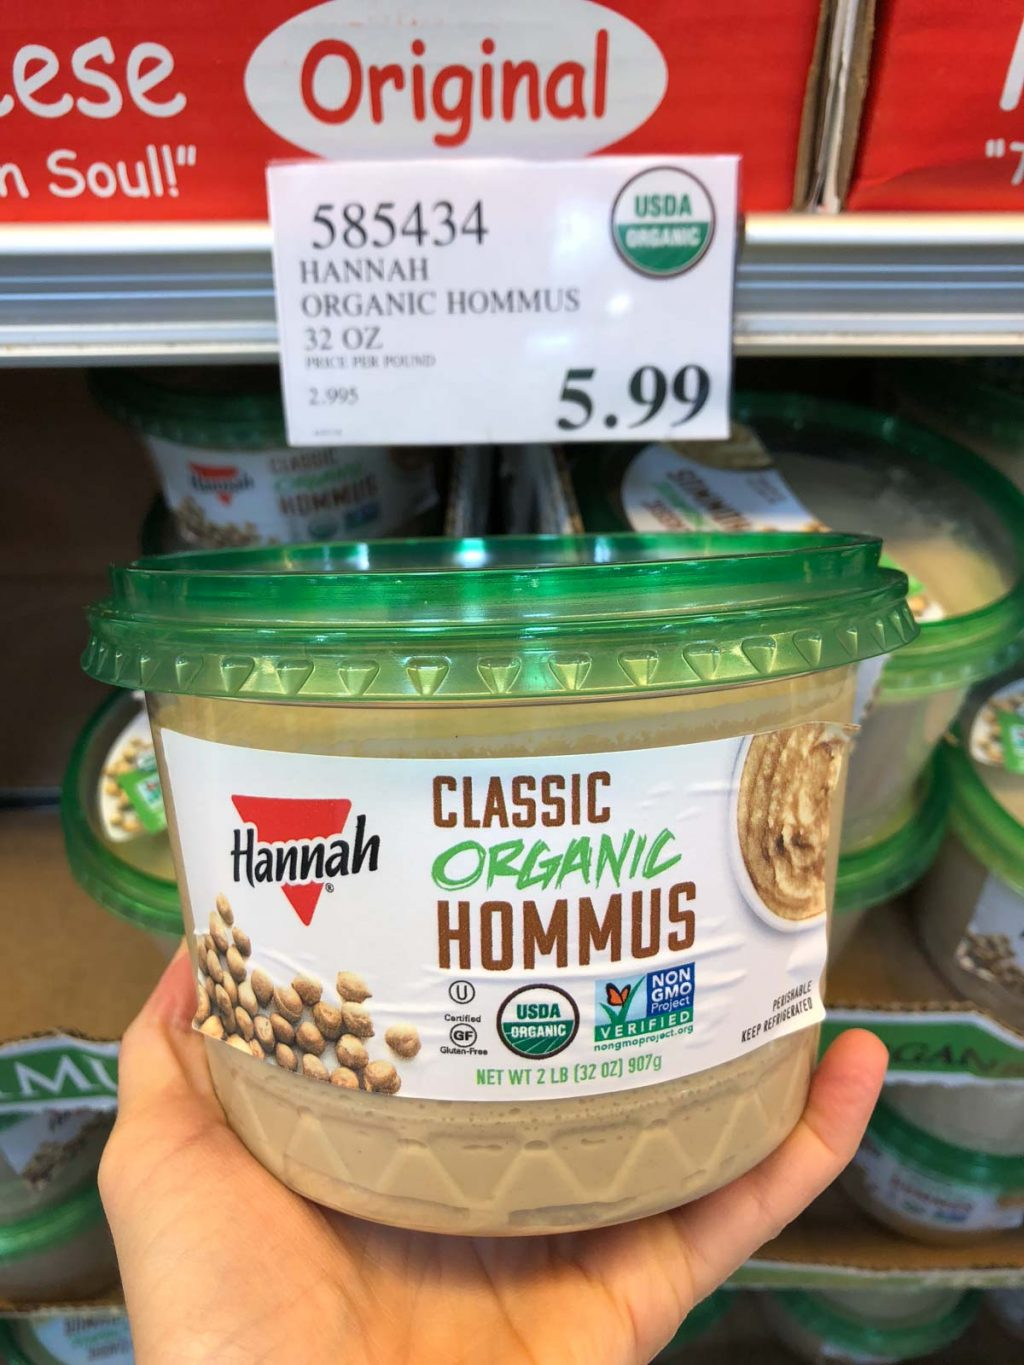 A hand holding a container of organic vegan hummus for $5.99 at Costco.